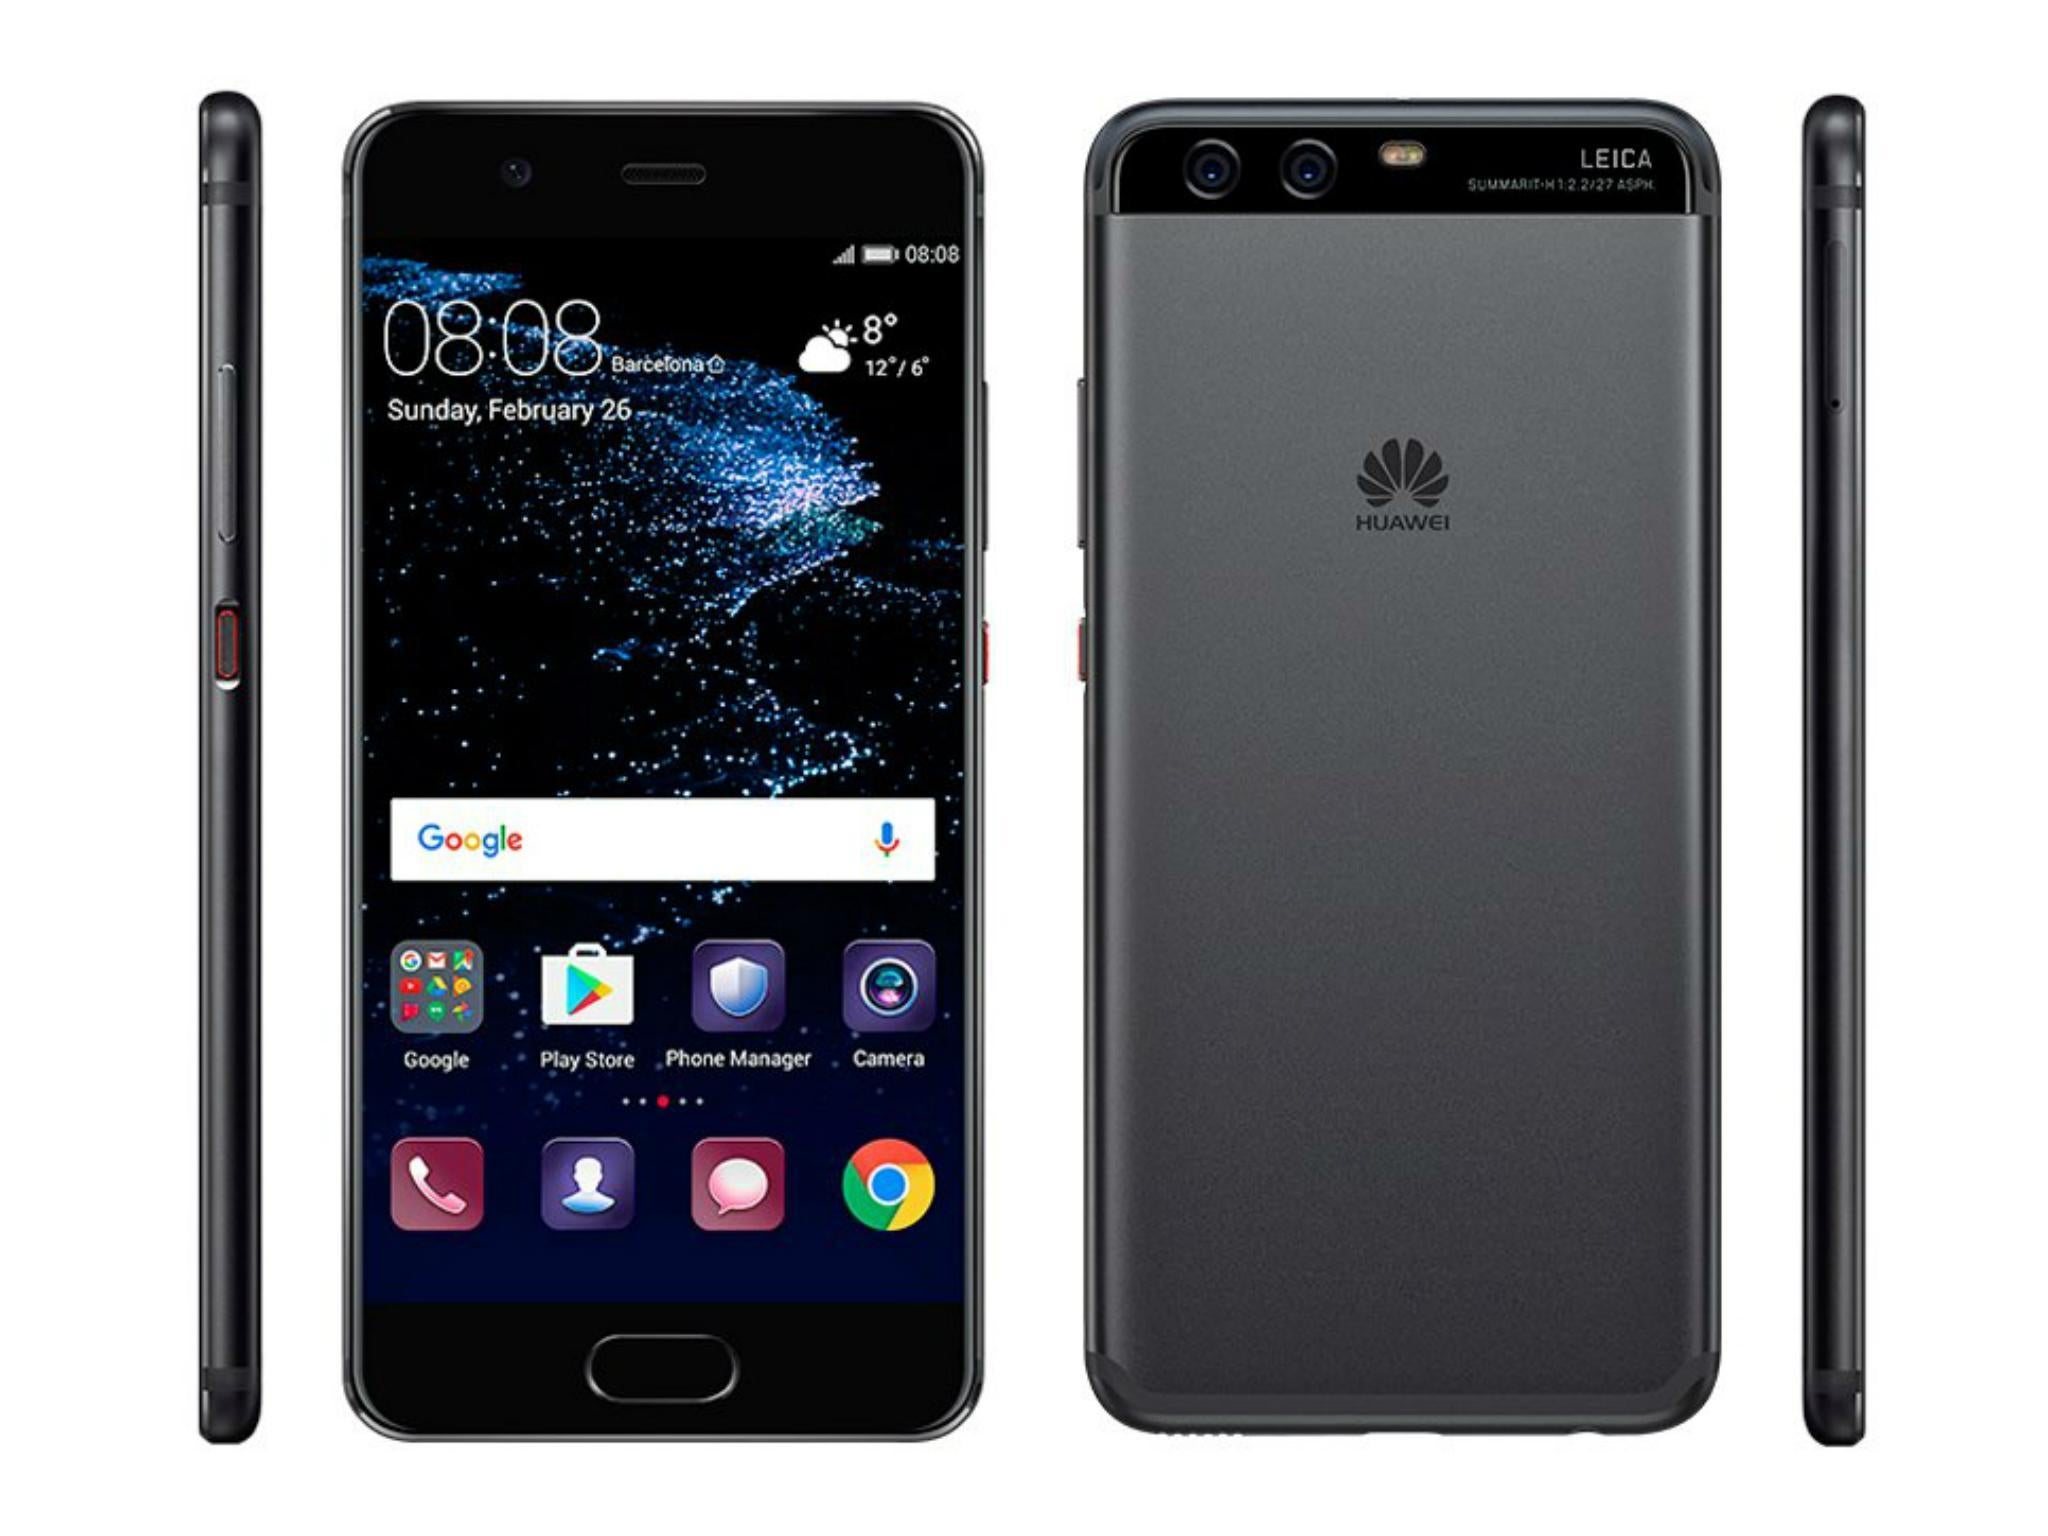 Huawei P10 Launches with AI Touch Technology and Multi-purpose Fingerprint Sensor